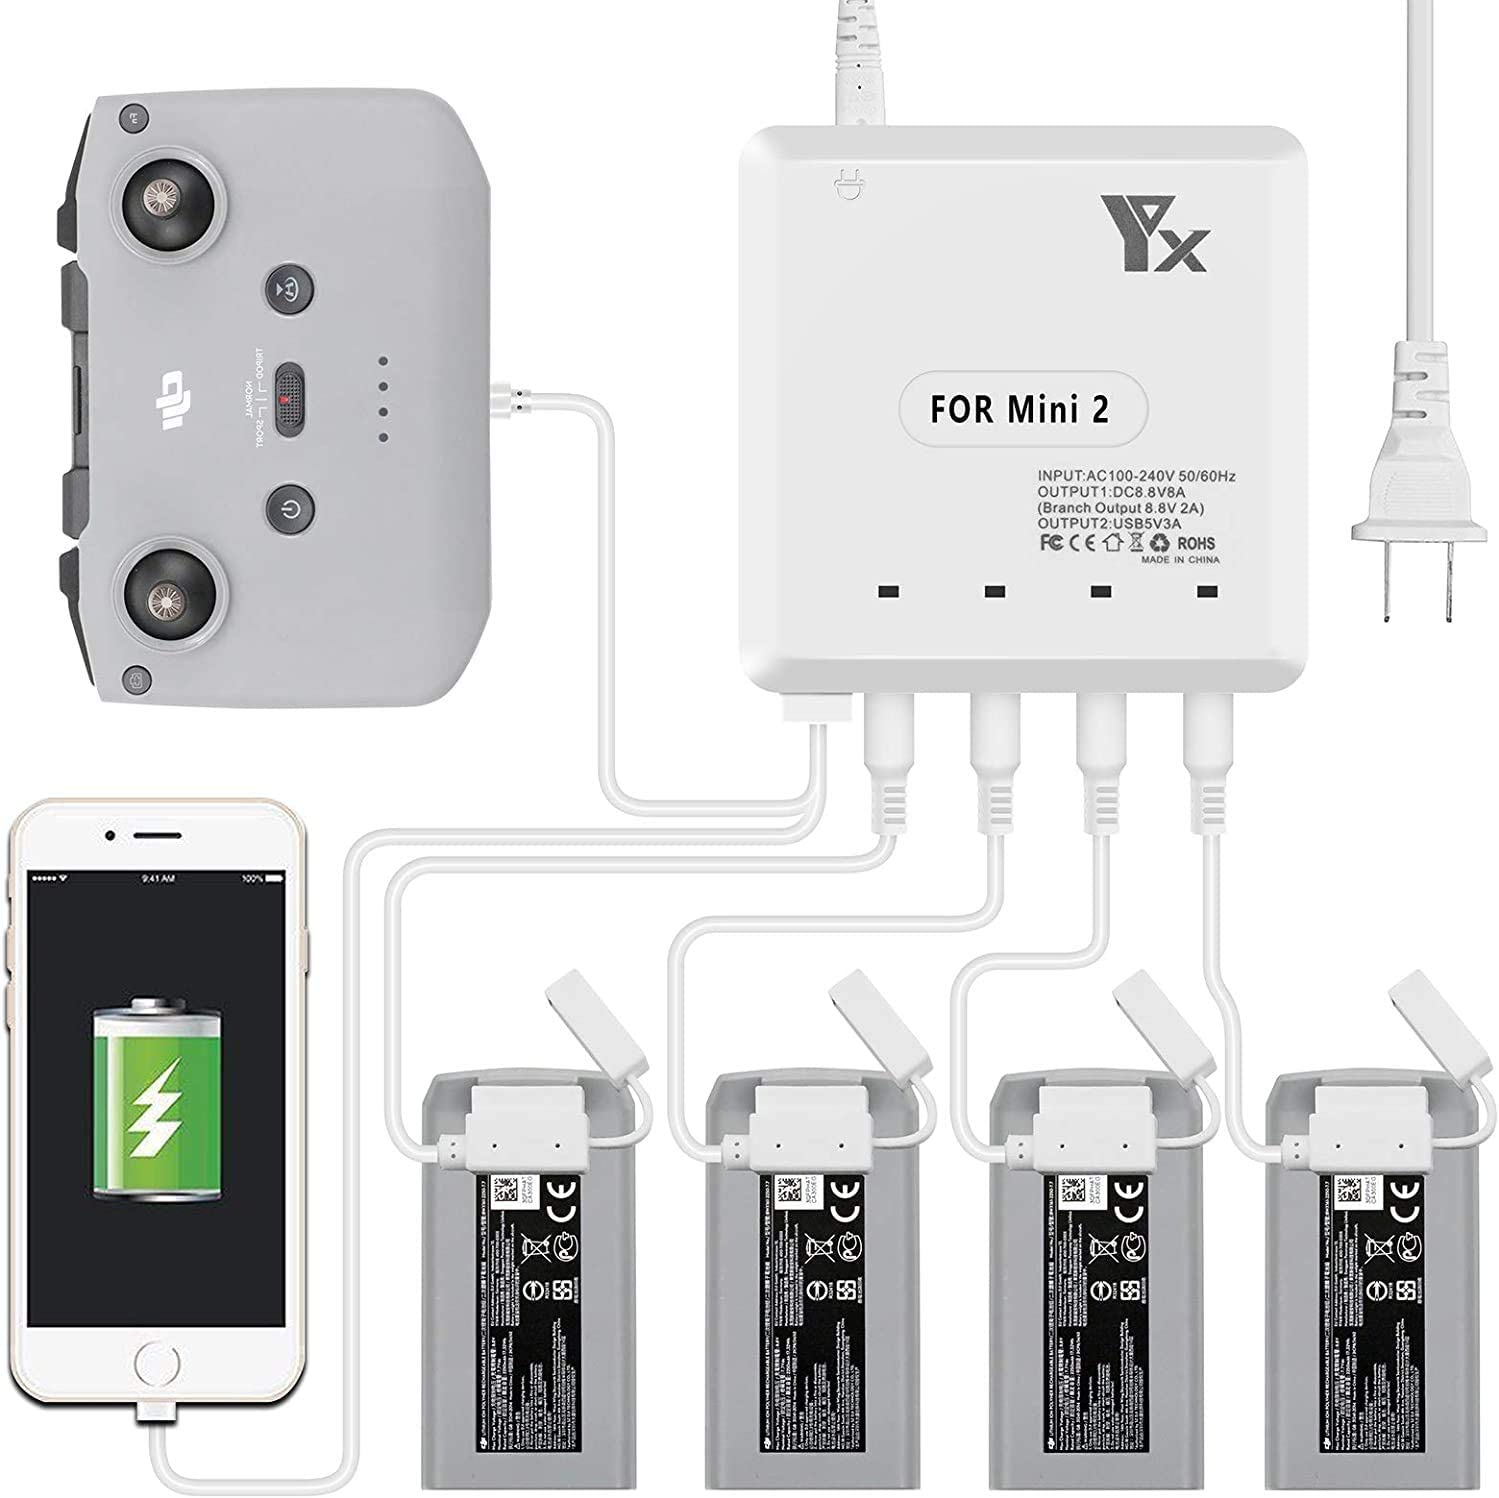 6-in-1 Fast Home Charger for The DJI - Mini 特価 2 Drone 品質保証 Valley